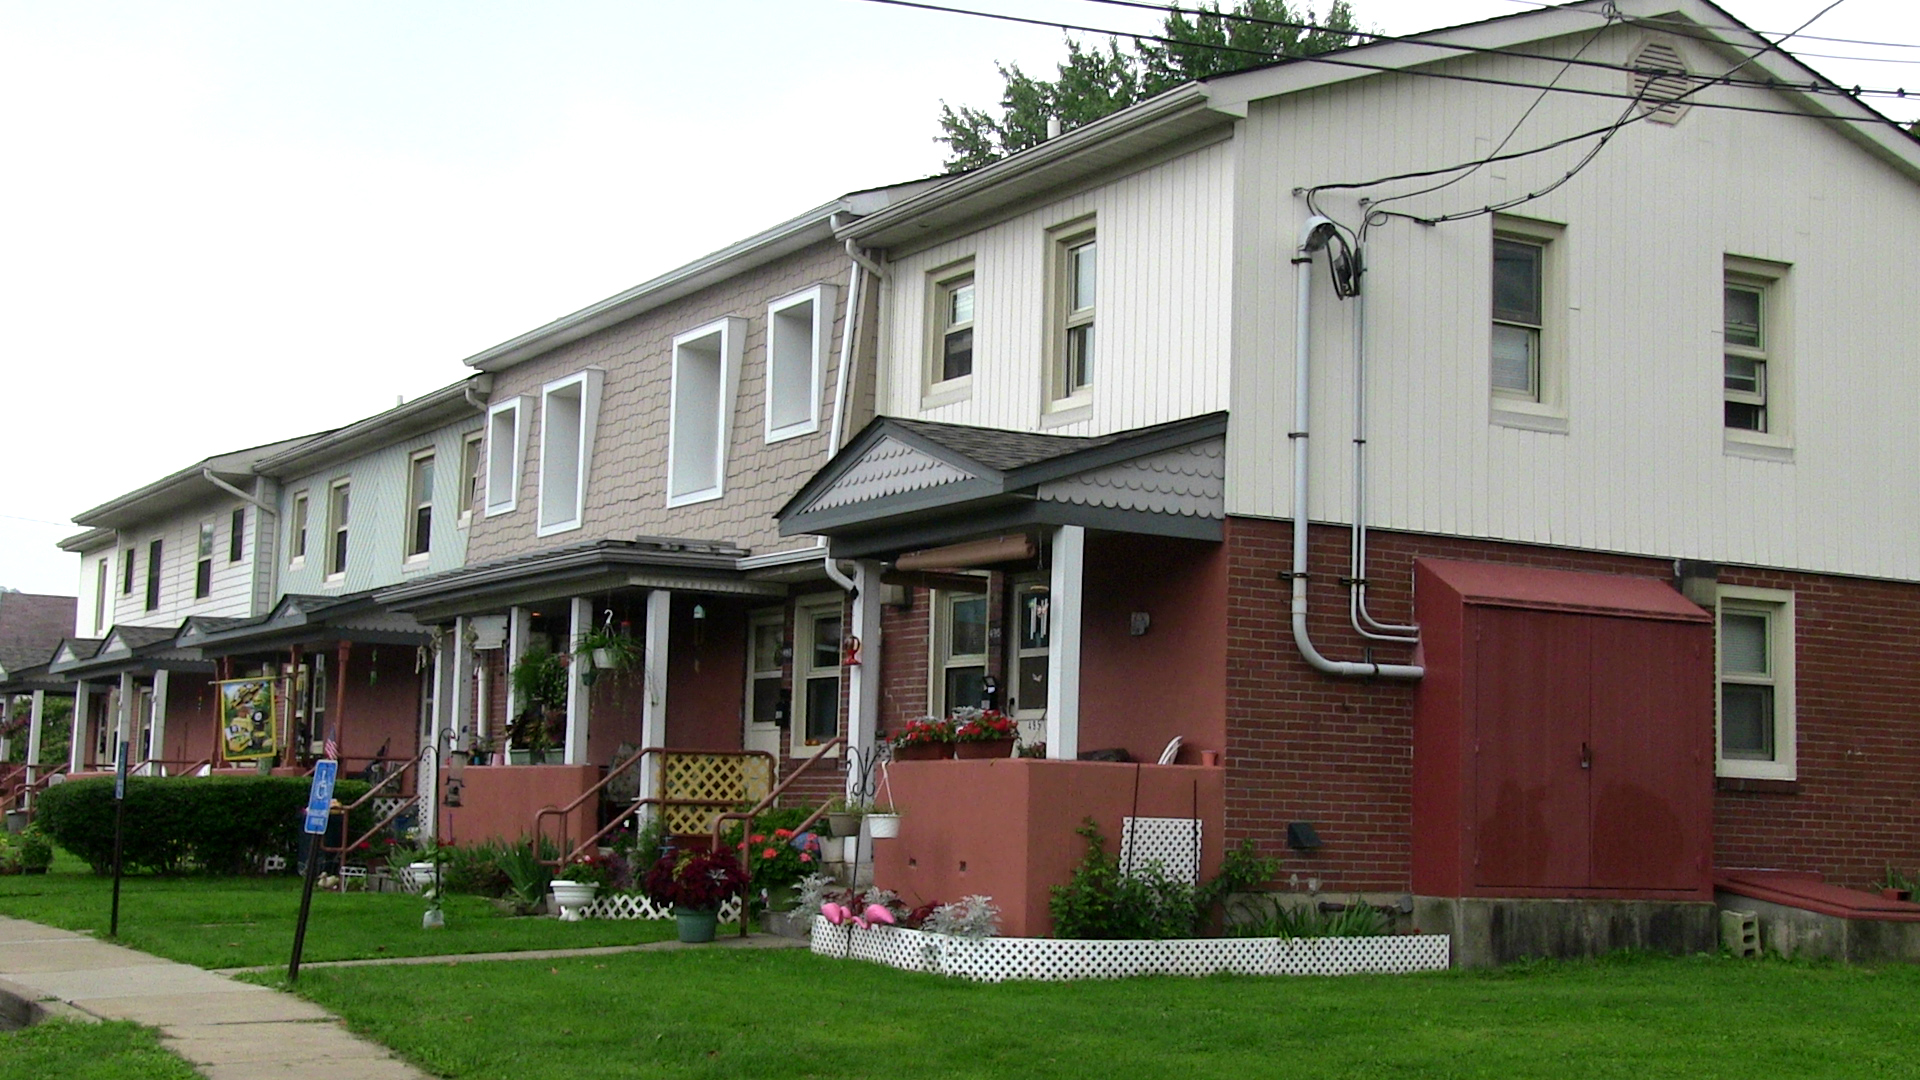 Image of Oakhurst Homes in Johnstown, Pennsylvania